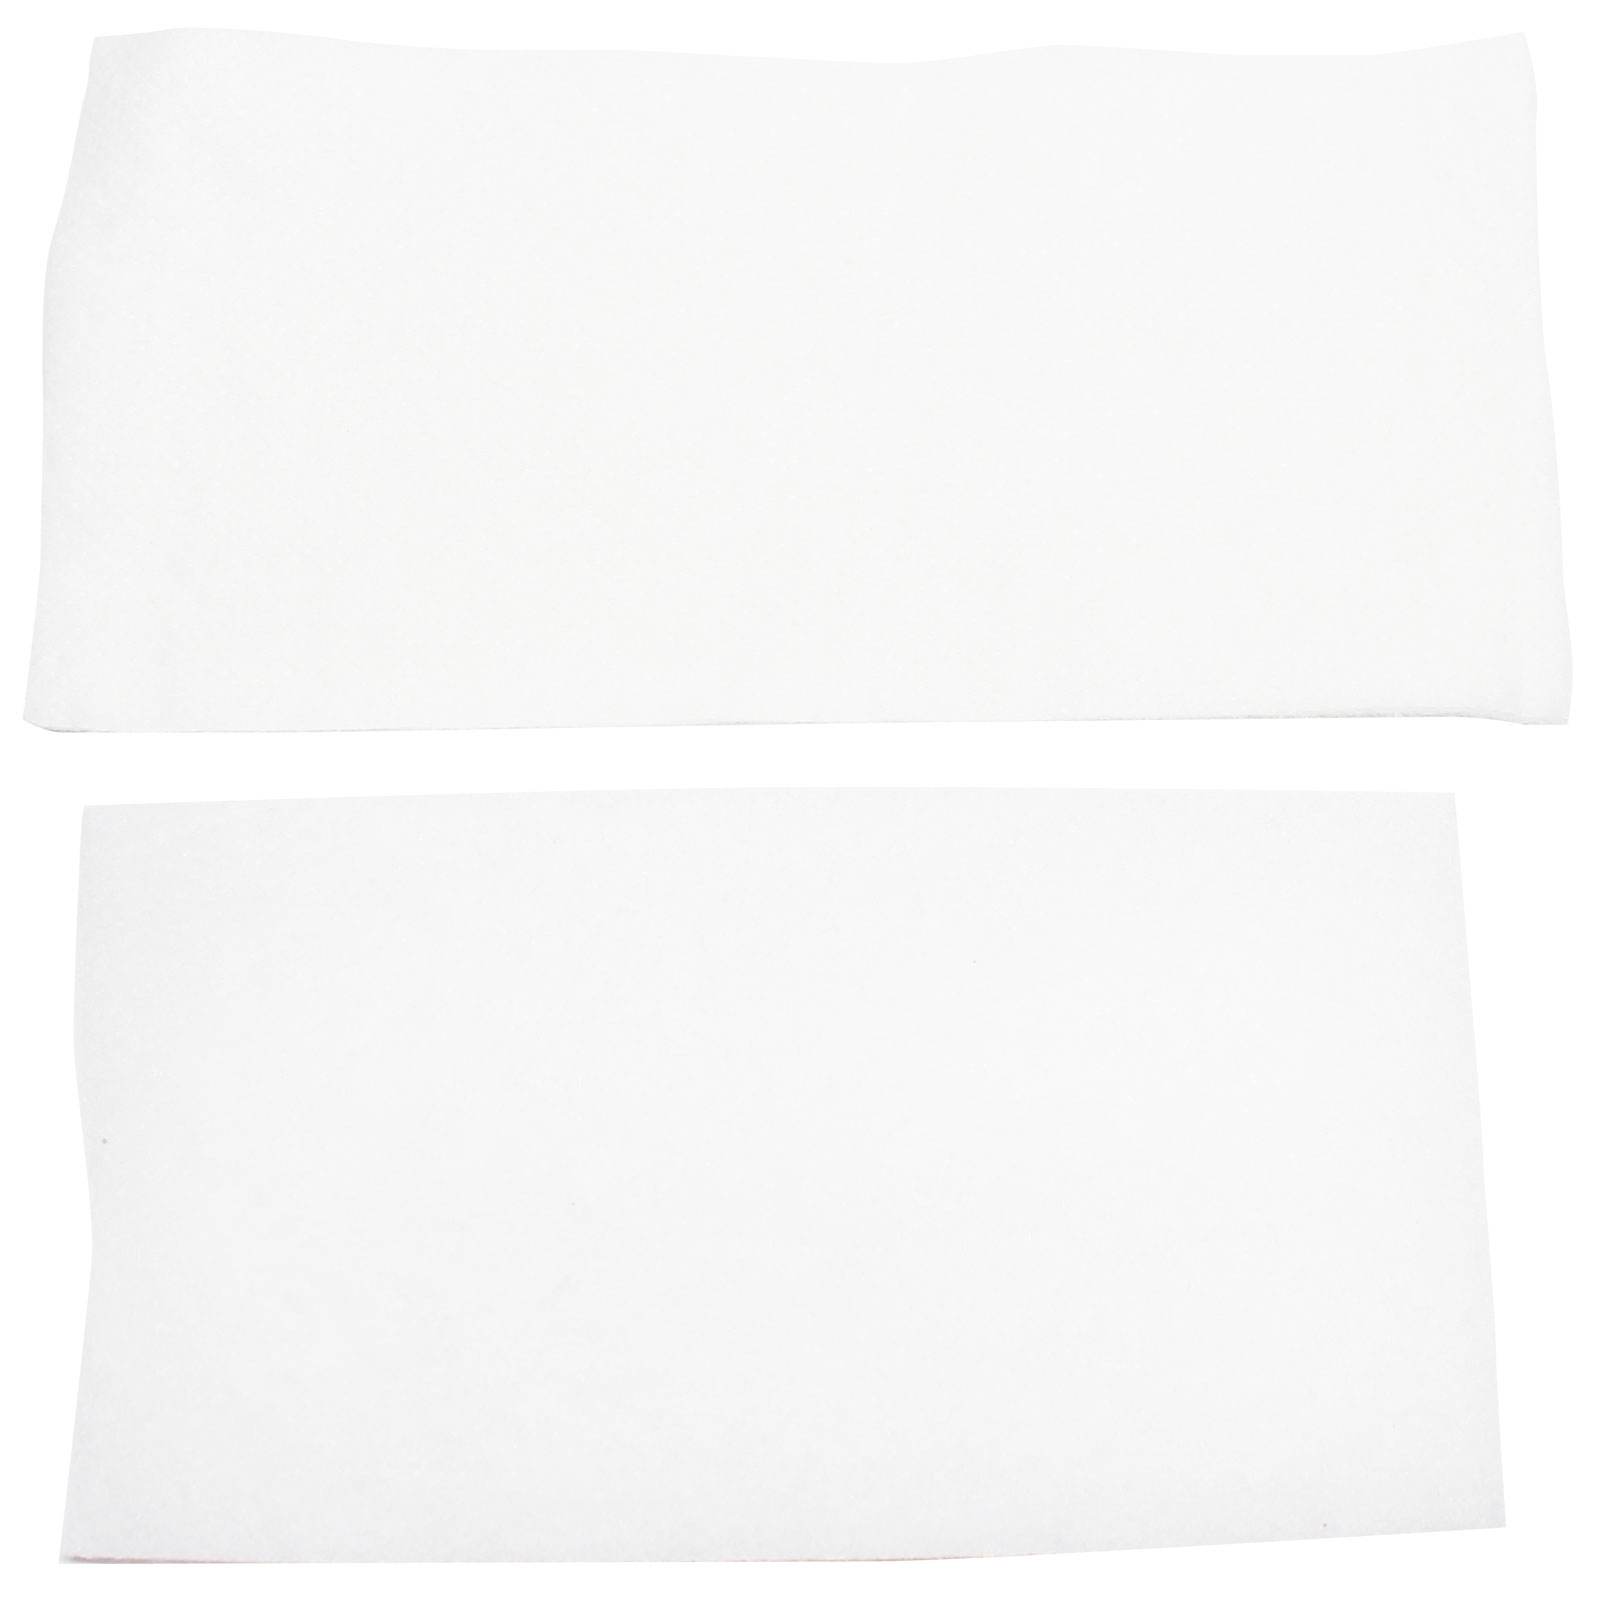 10 Replacement Miele S524 Vacuum Bags, 10 Micro Filters & 3 HEPA Filter - Compatible Miele Type FJM Bags, Micro Filters & SF-AH 30, SF-HA 30, AH30 Filter (5-Pack, 2 Bags Per Pack) - image 3 de 4